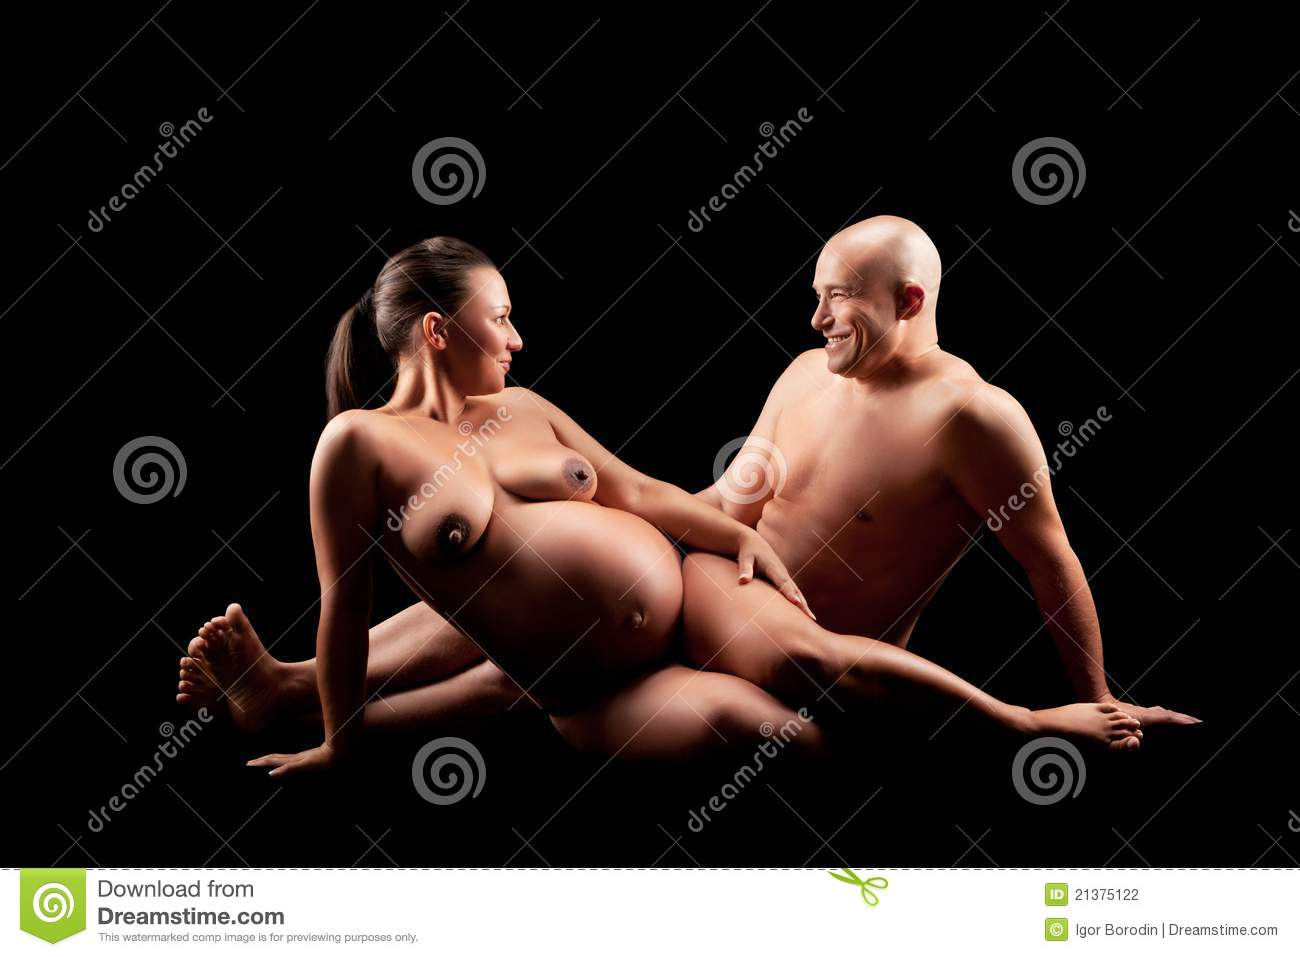 Your place nude of husband pregnant wife